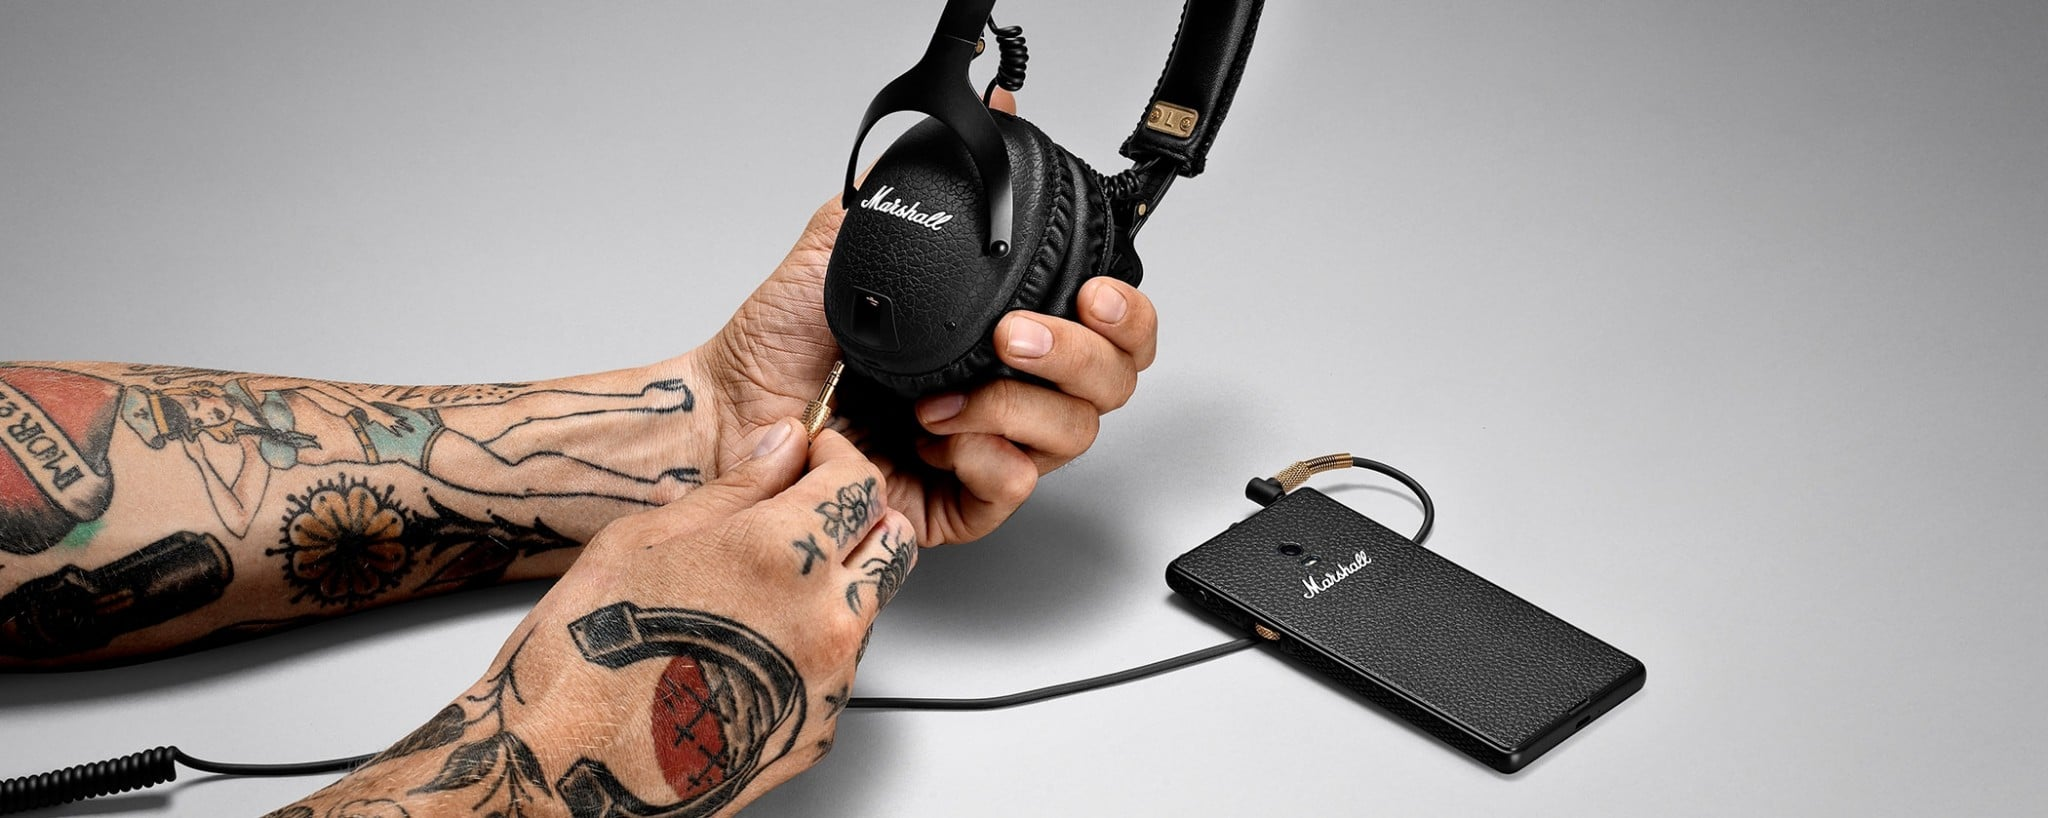 marshall_headphones_slide__monitor_bluetooth__05_3800